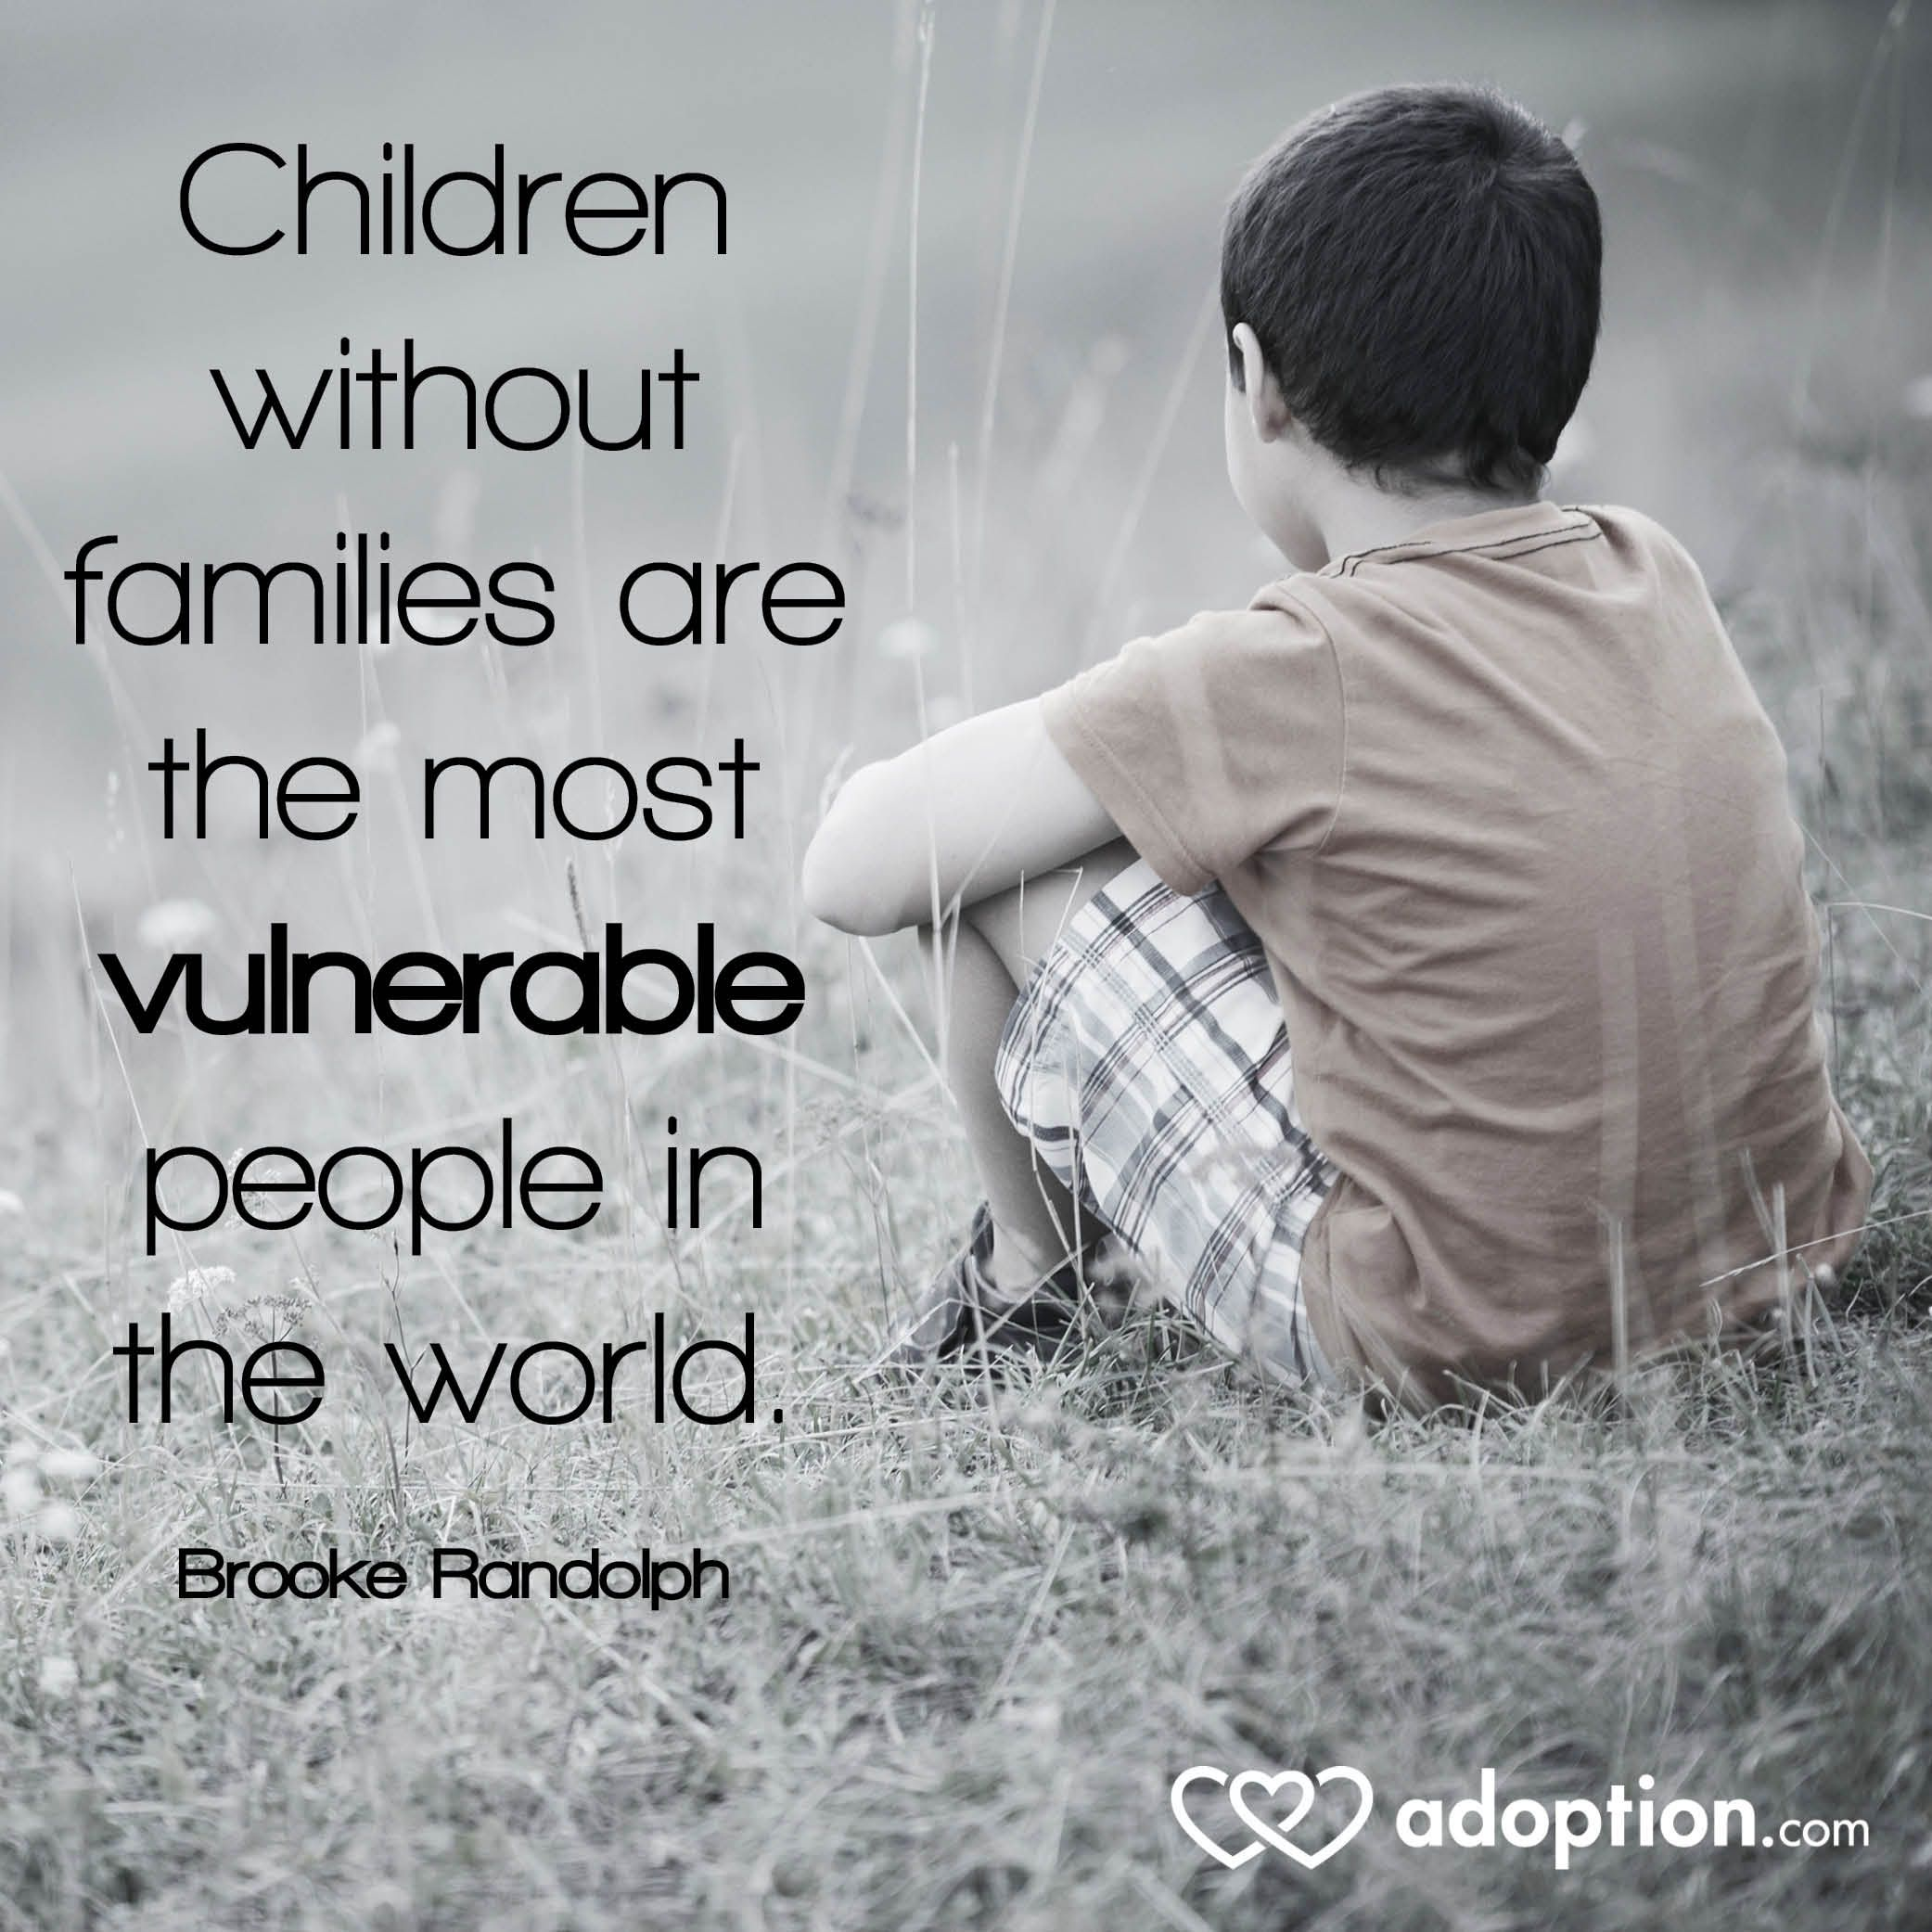 Children without families are the most vulnerable people